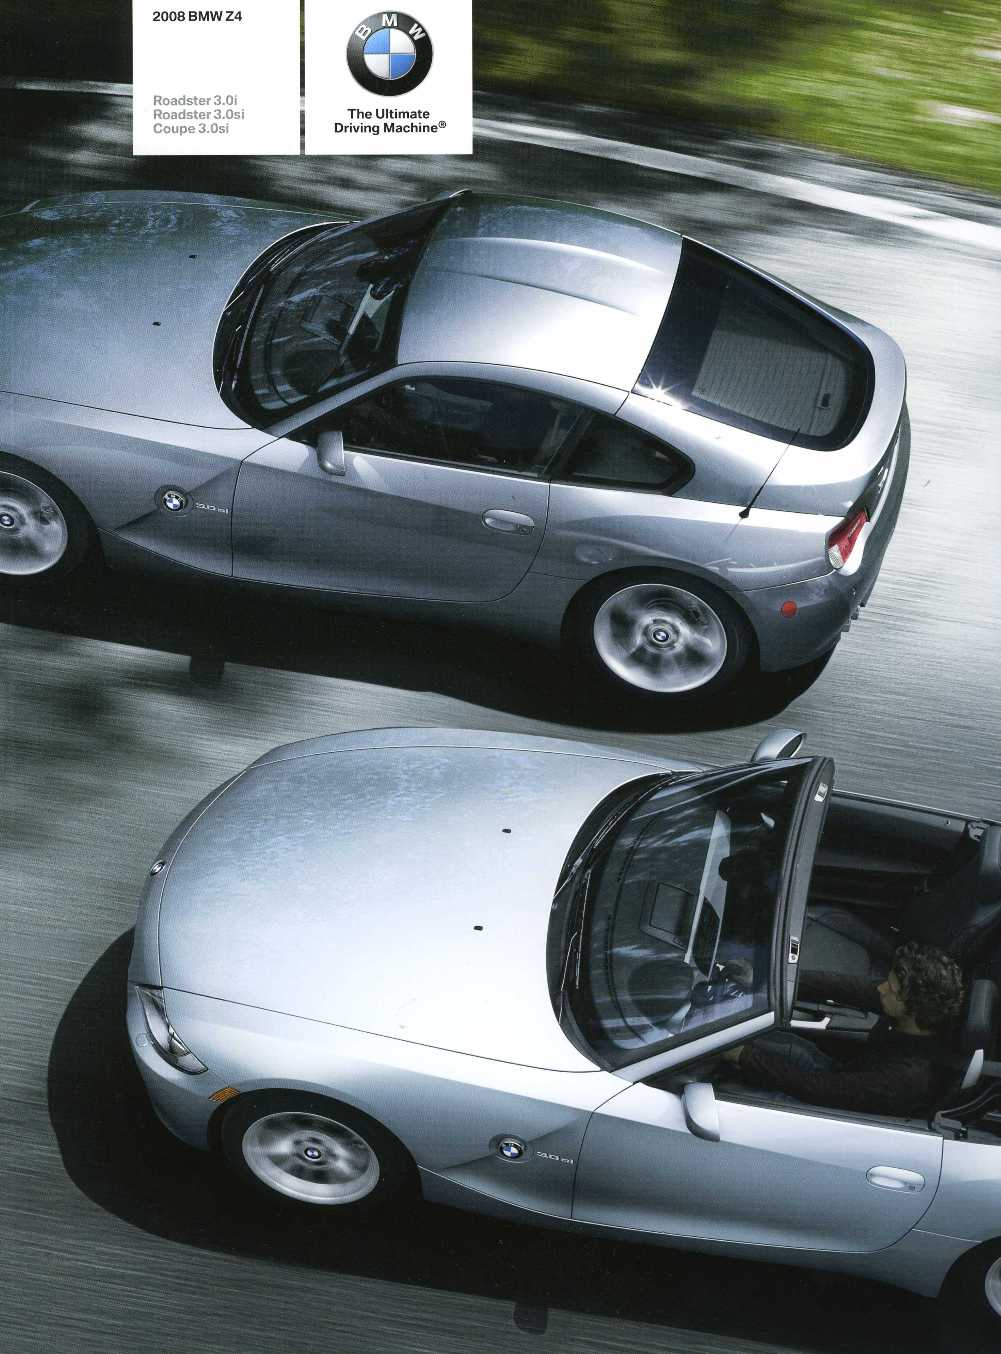 Brochure - 2008 BMW Z4 Roadster 3.0i Roadster 3.0si Coupe 3.0si - E85 / E86 (1st version)